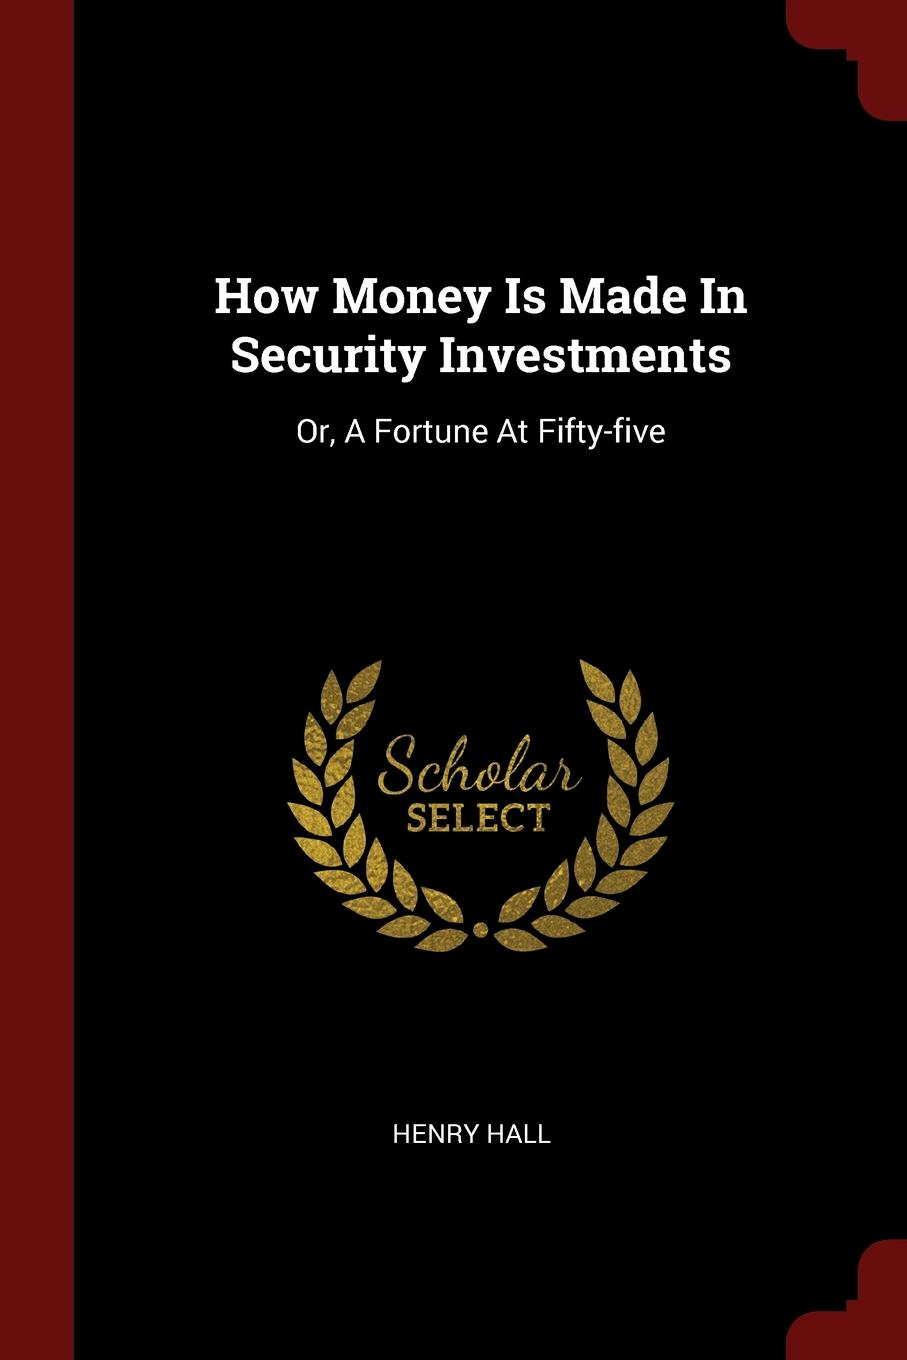 Henry Hall How Money Is Made In Security Investments. Or, A Fortune At Fifty-five